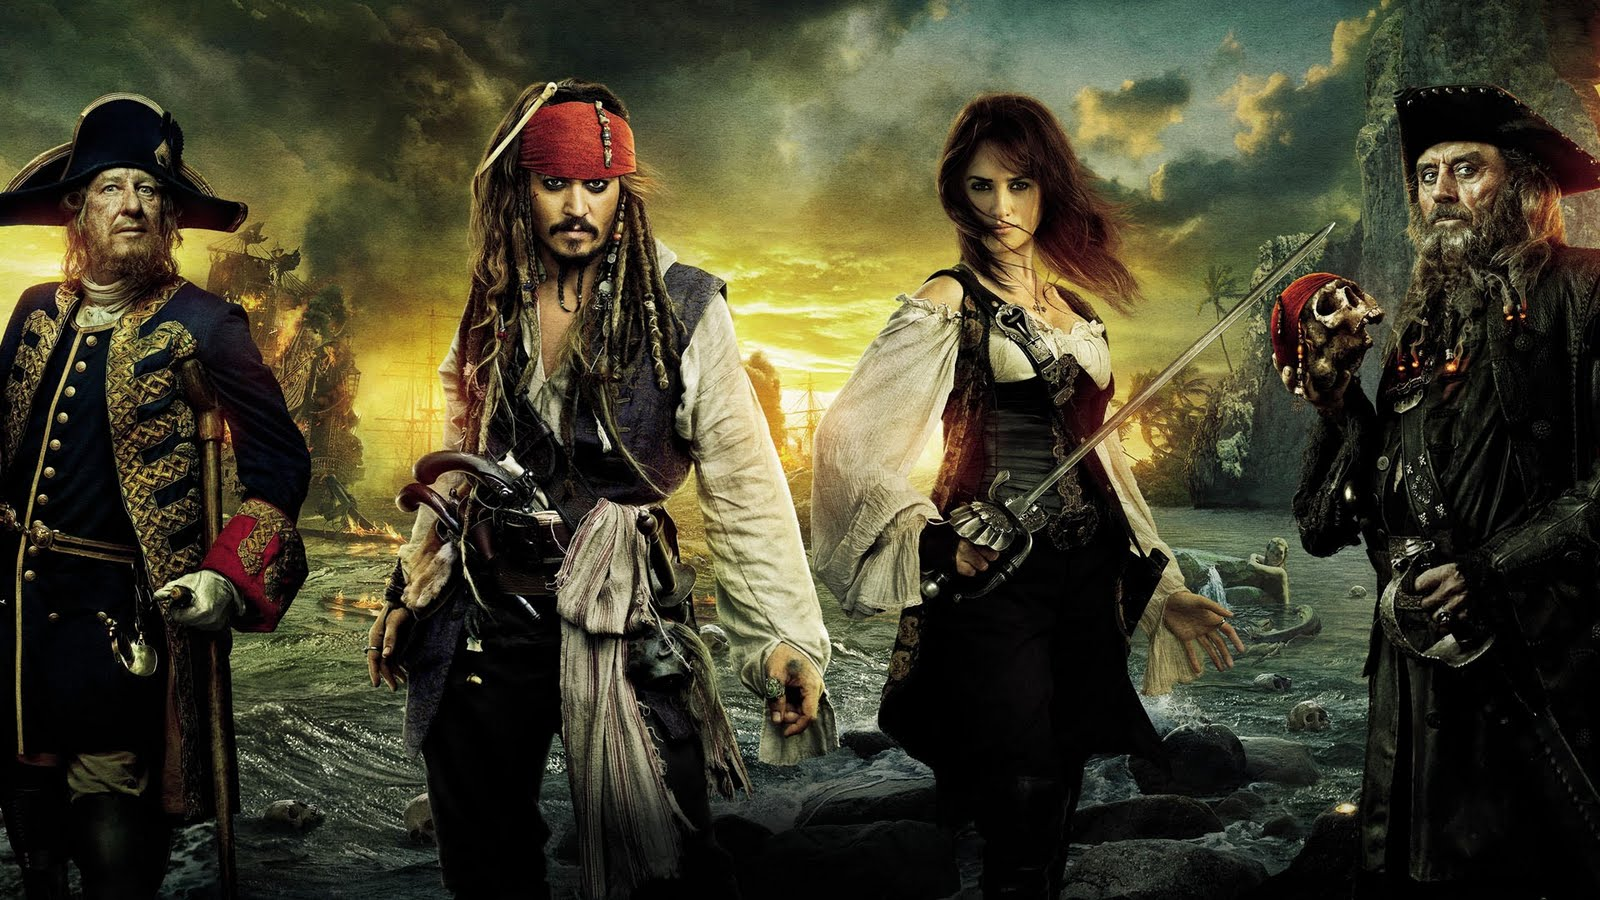 Wallpapers photo art pirates of the caribbean on stranger tides hd wallpapers wallpaper - Pirates of the caribbean images hd ...